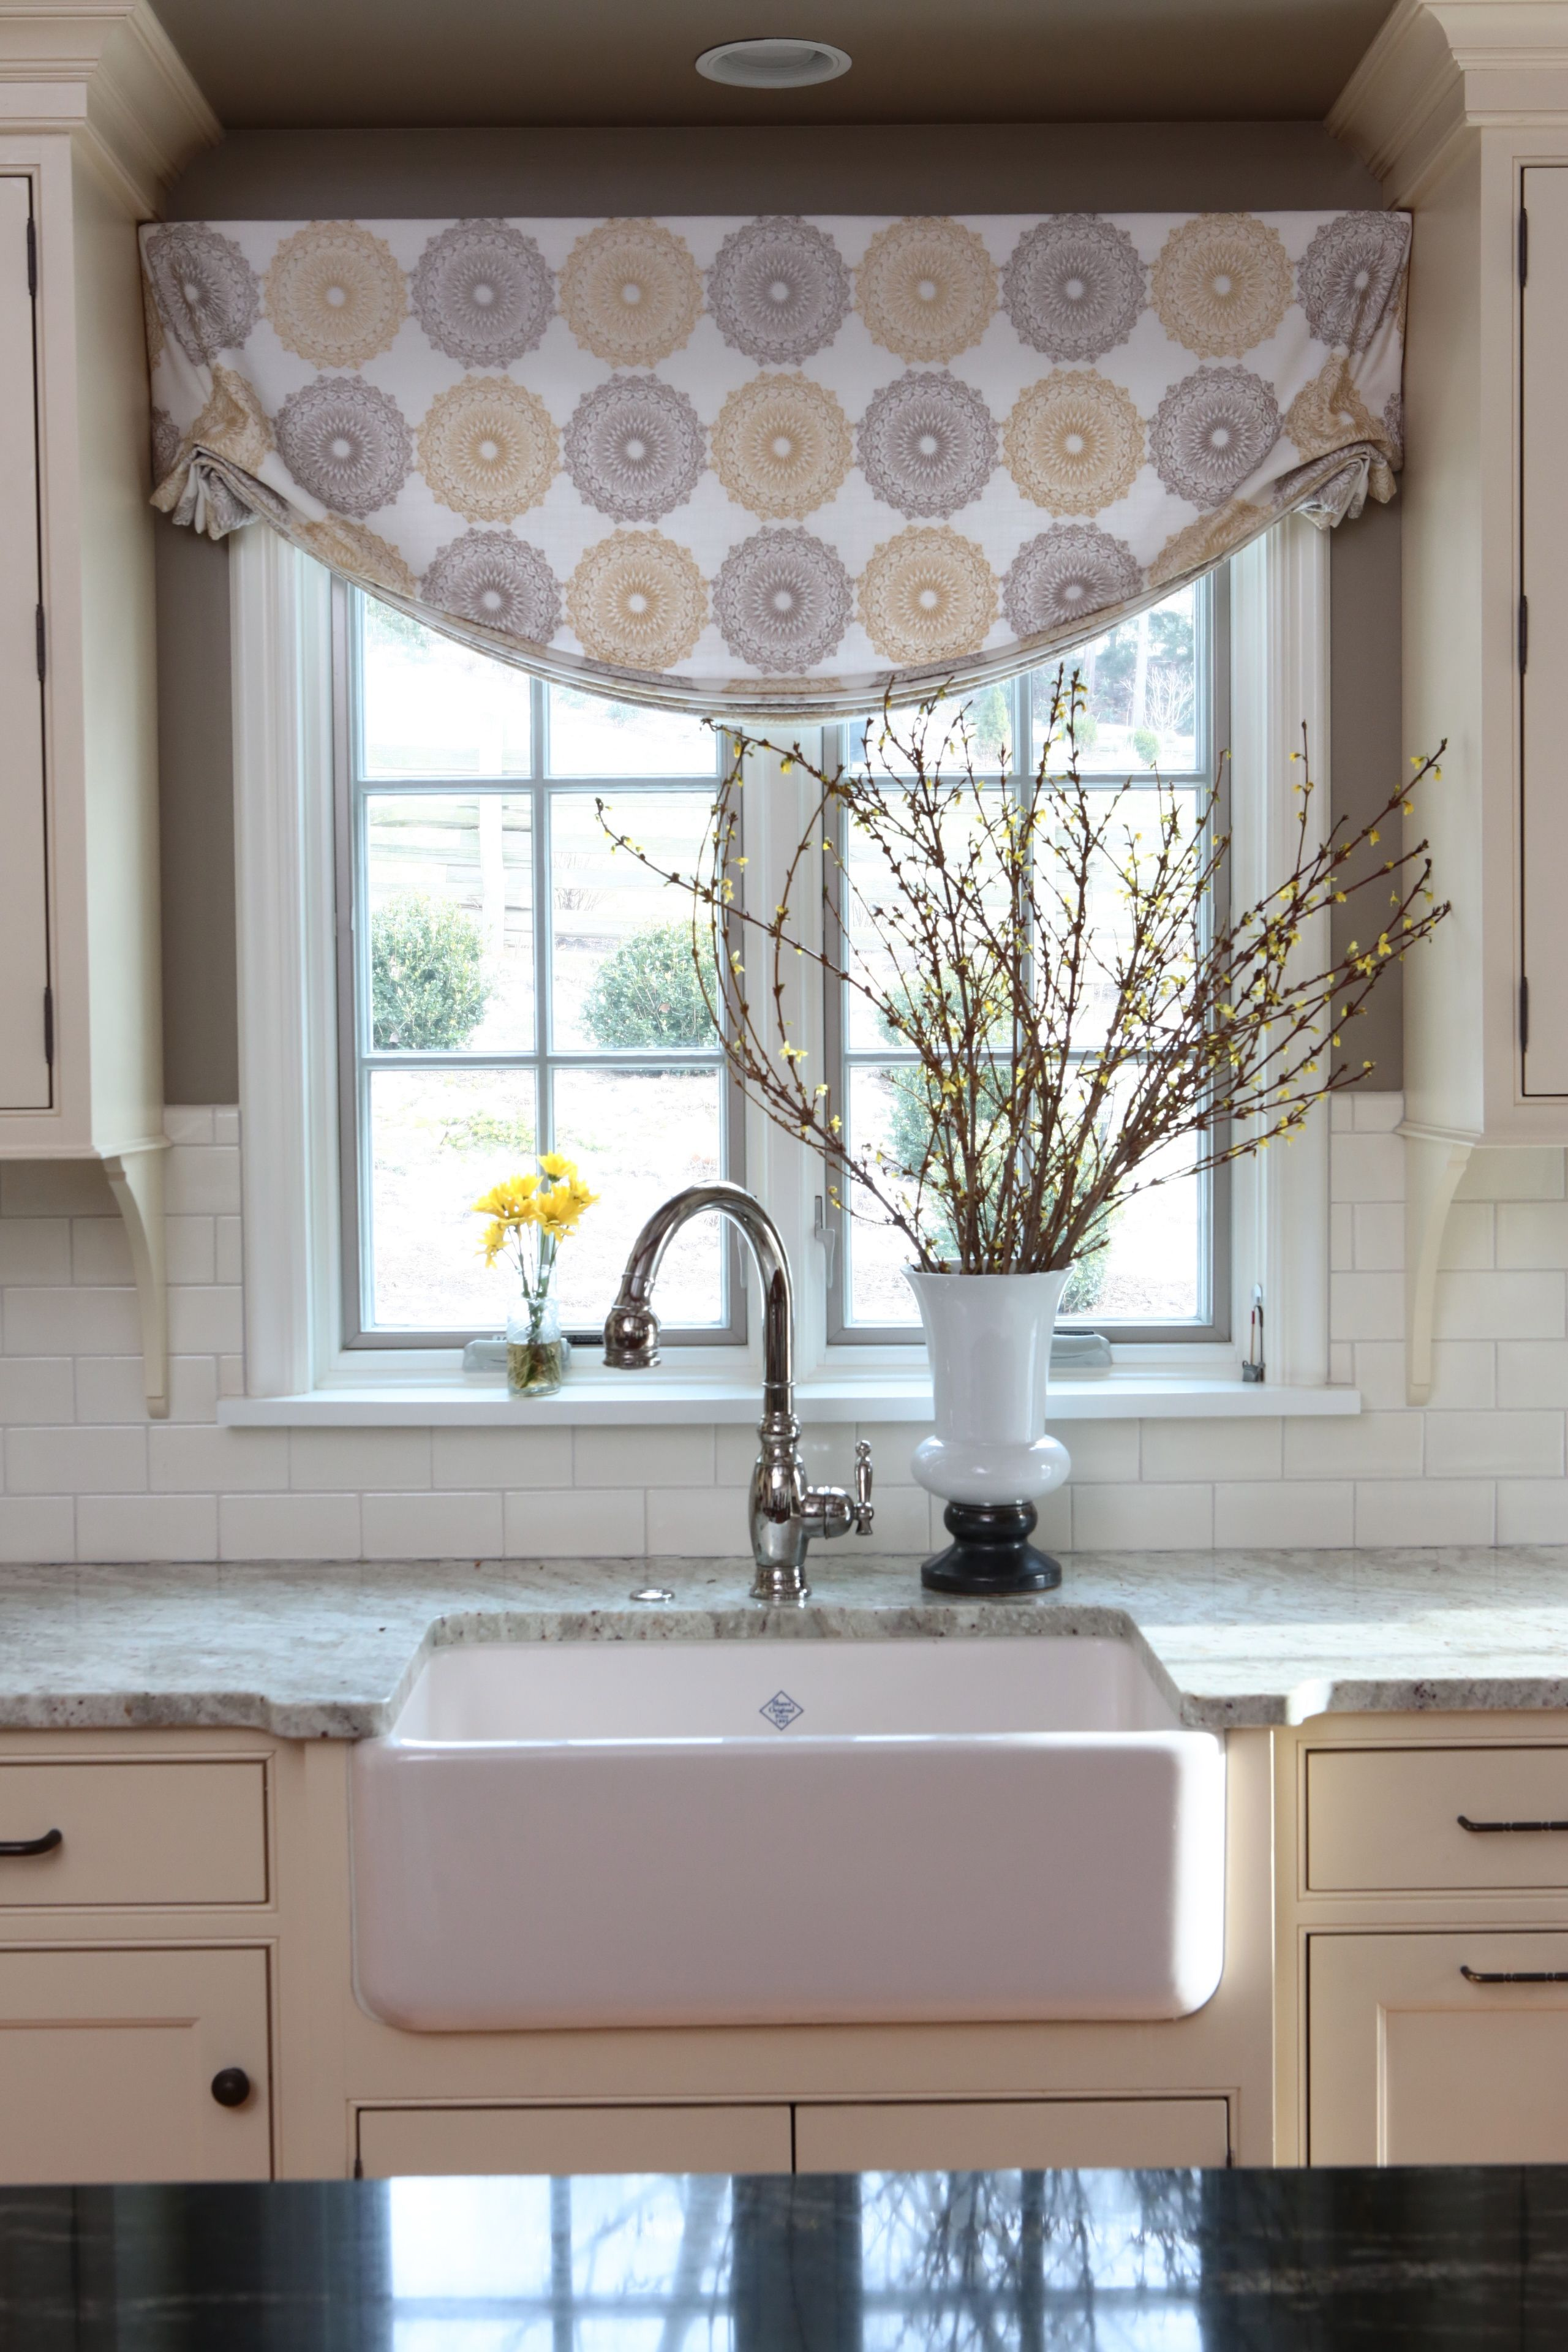 Window under kitchen cabinets  sunny yellow kitchen cabinets  farmhouse sink  relaxed valance